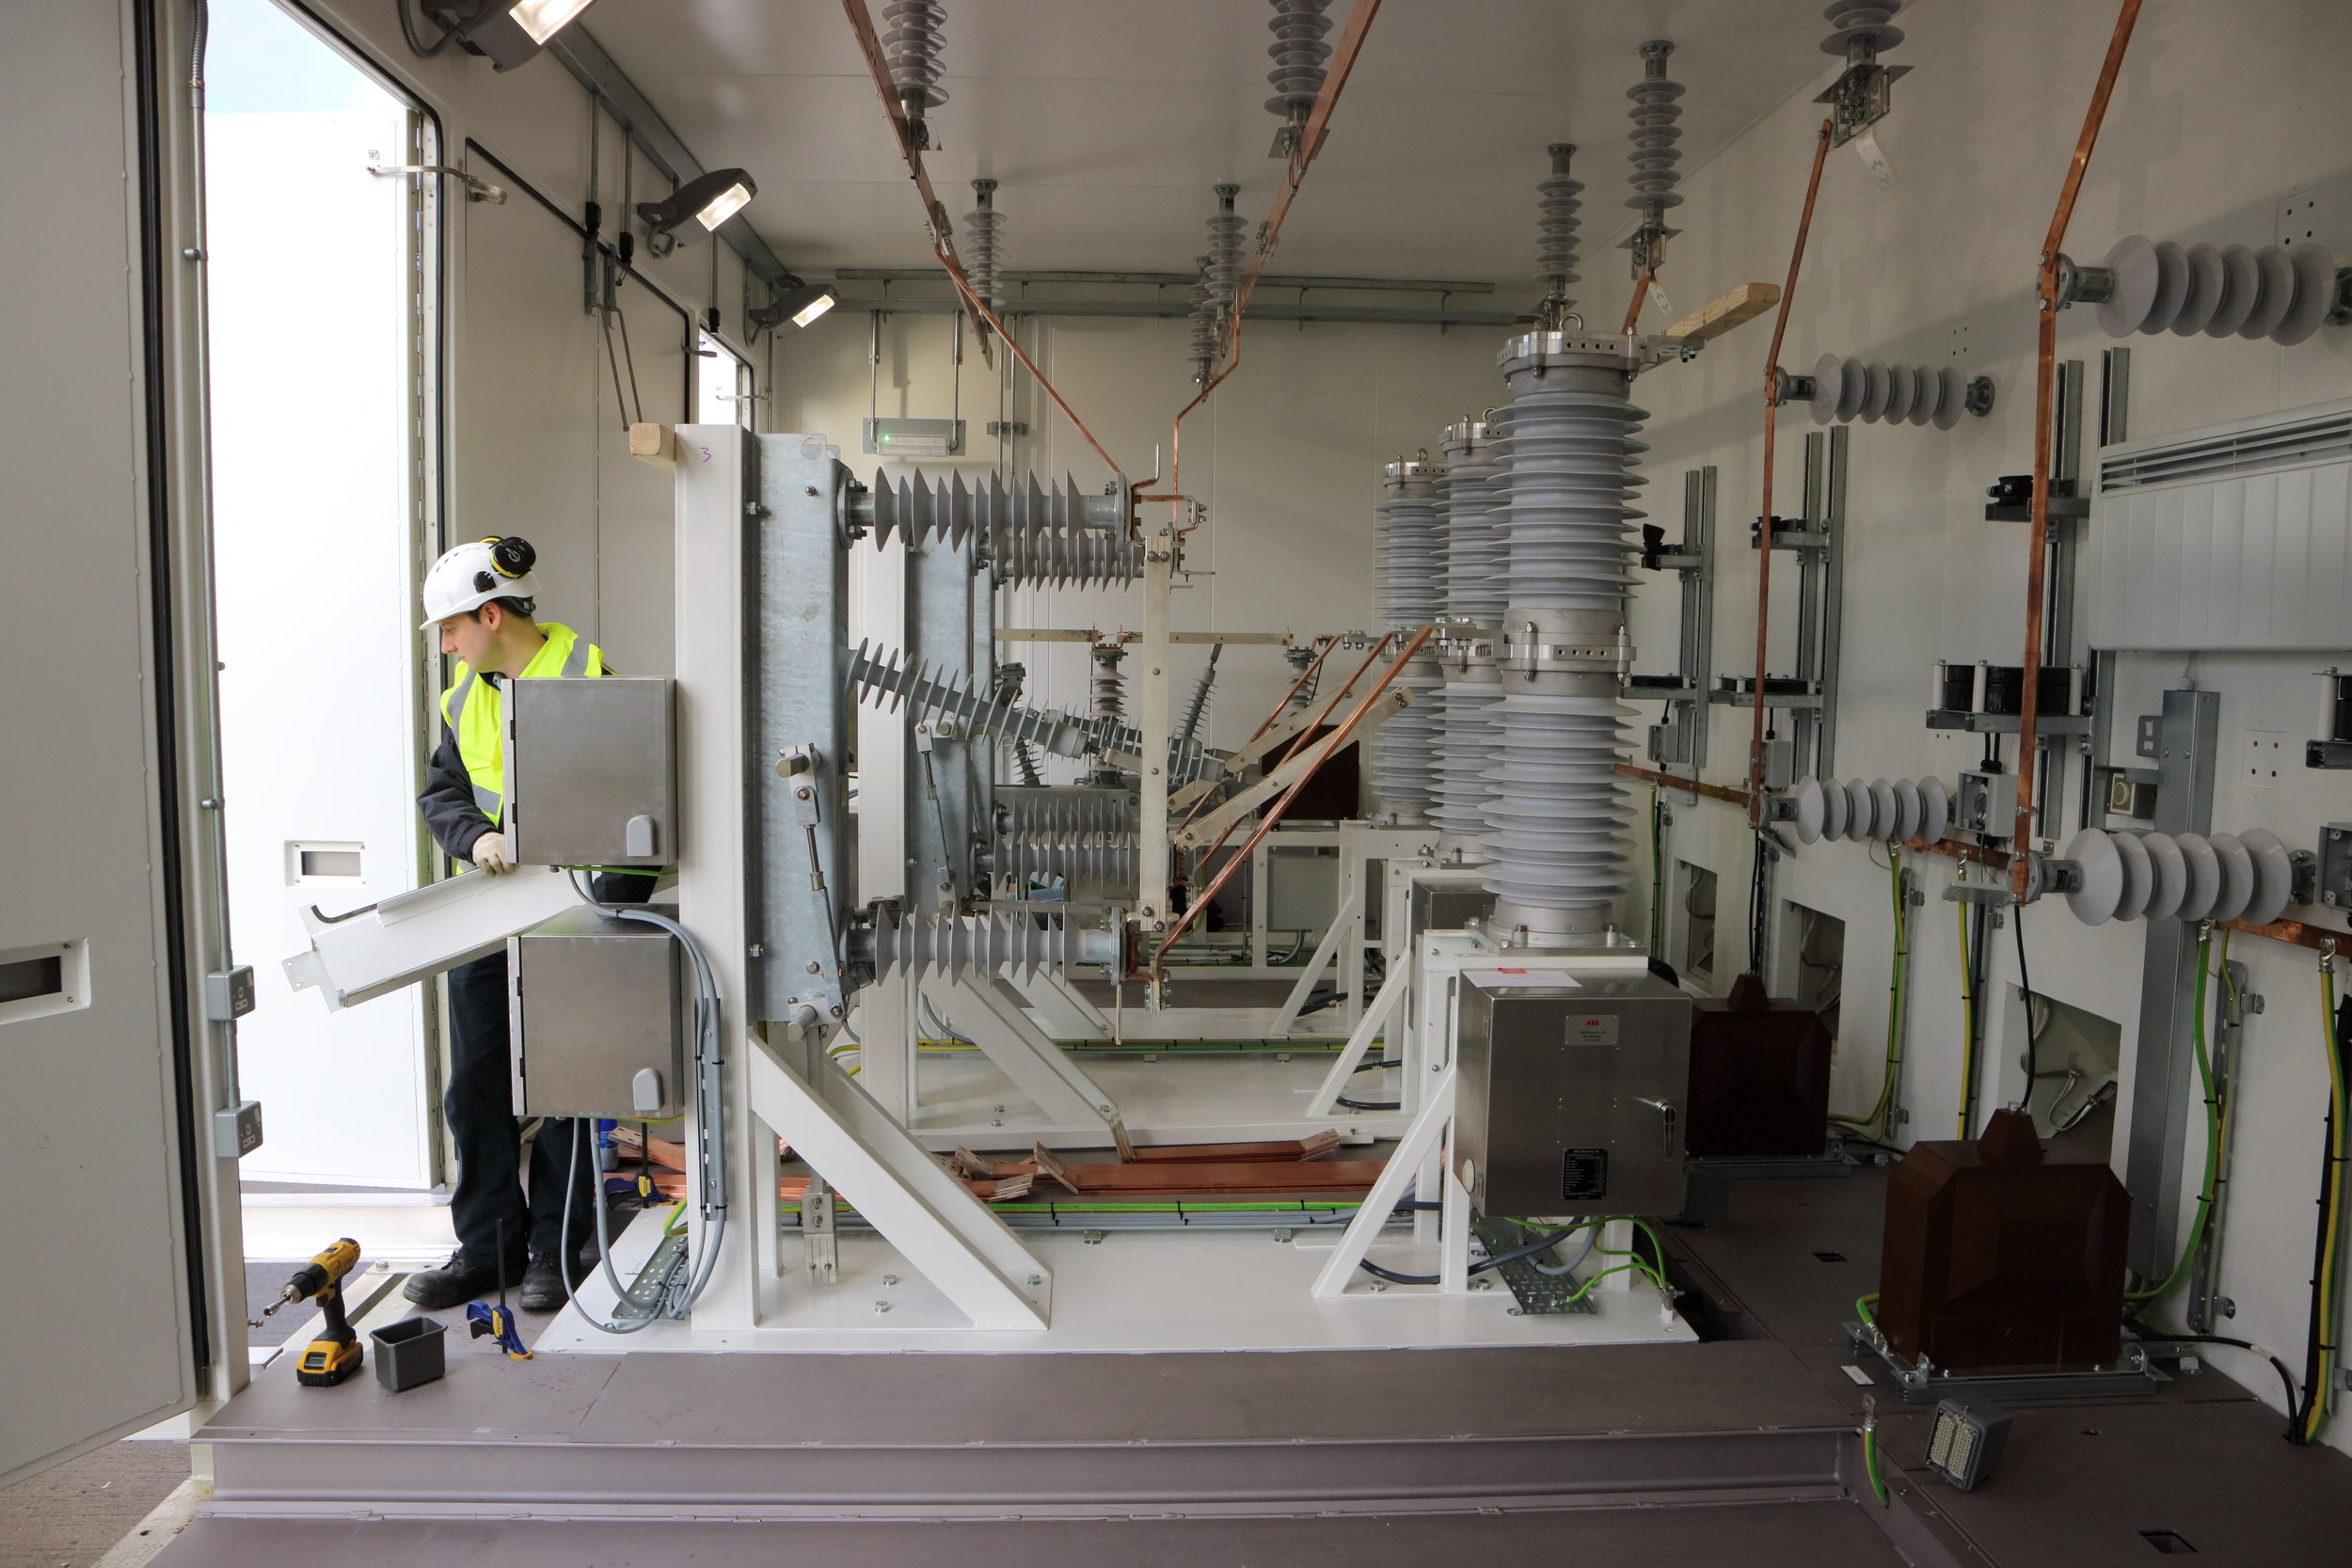 Image 5 - inside the substation.JPG